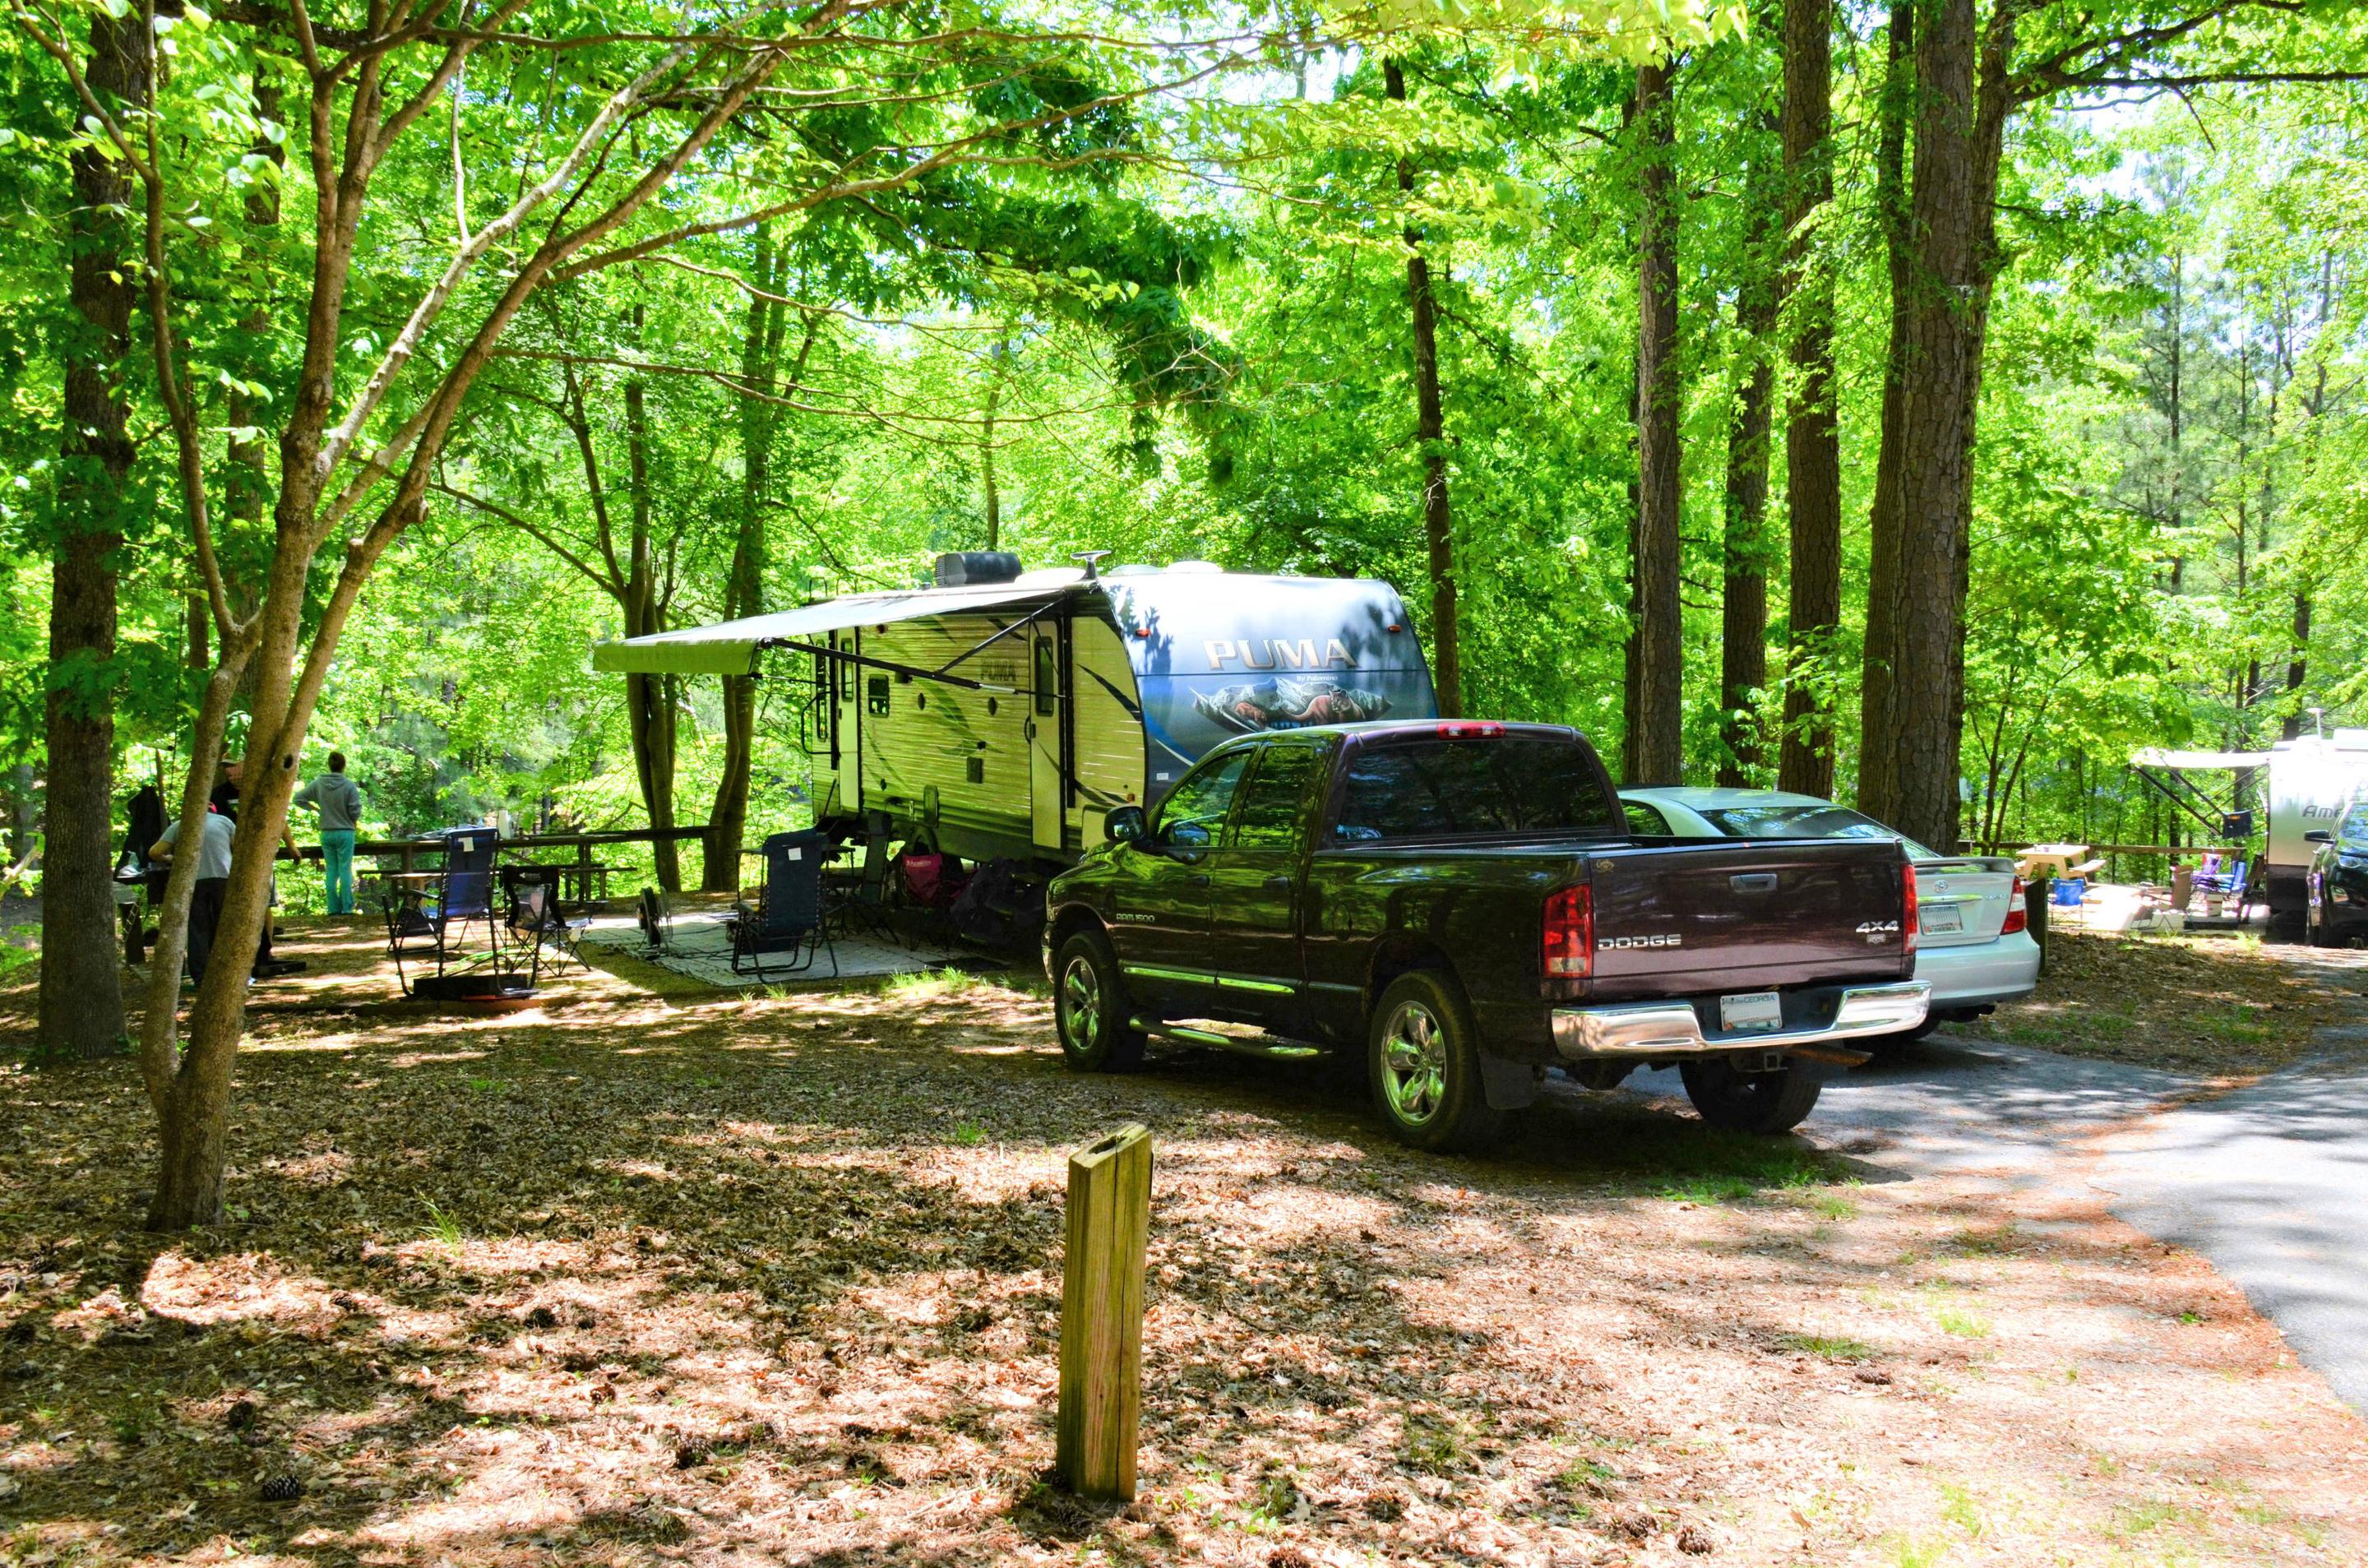 Awning-side clearance.McKinney Campground, campsite 100.